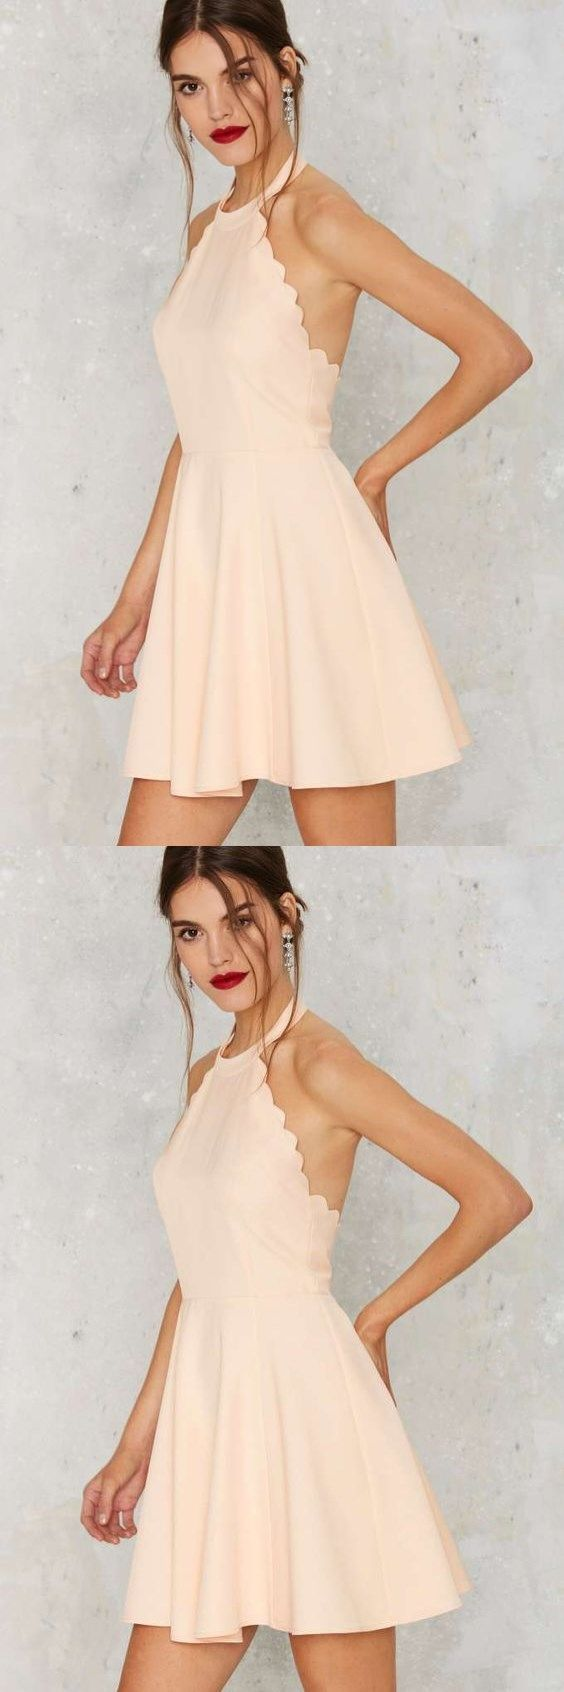 Full scallop attack flare dress peach prom dresses short above